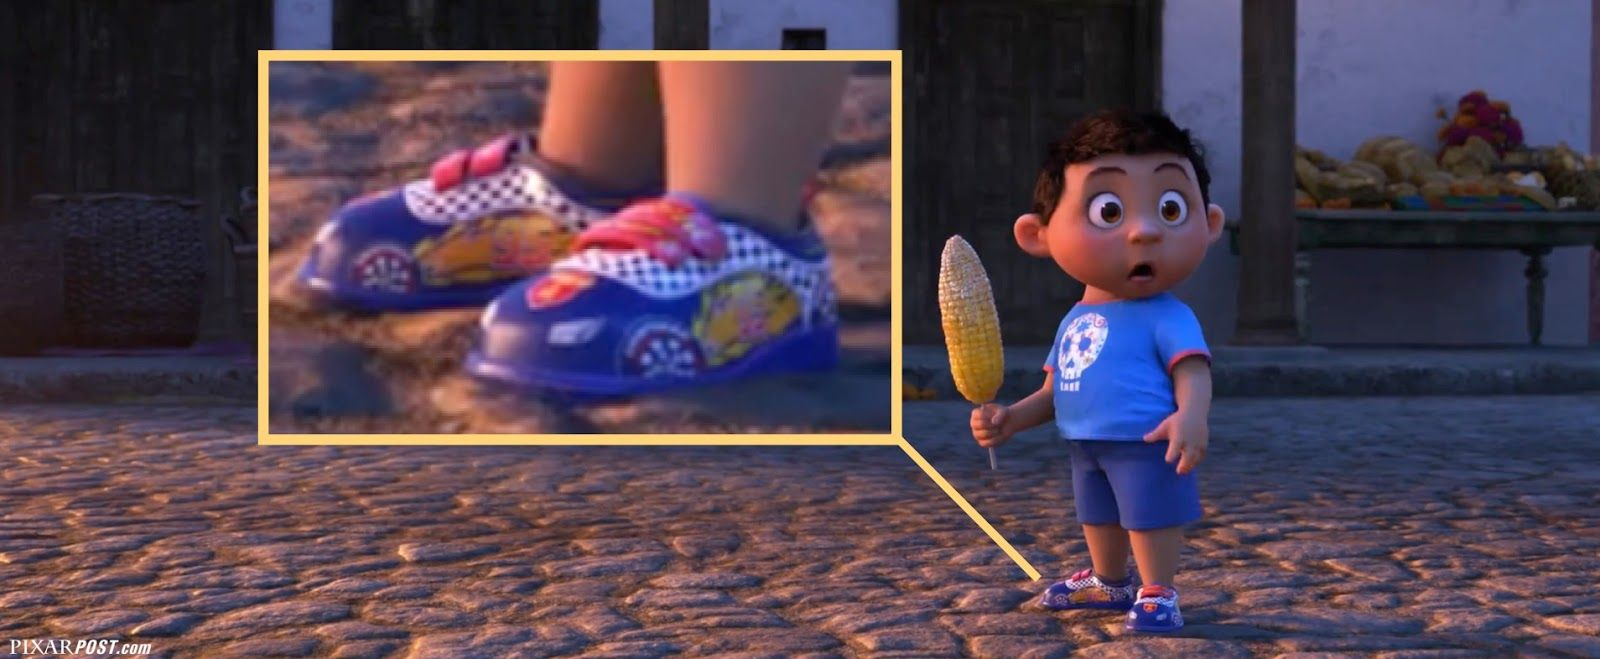 Pixar S Short Dante S Lunch Features Numerous Hidden Easter Eggs